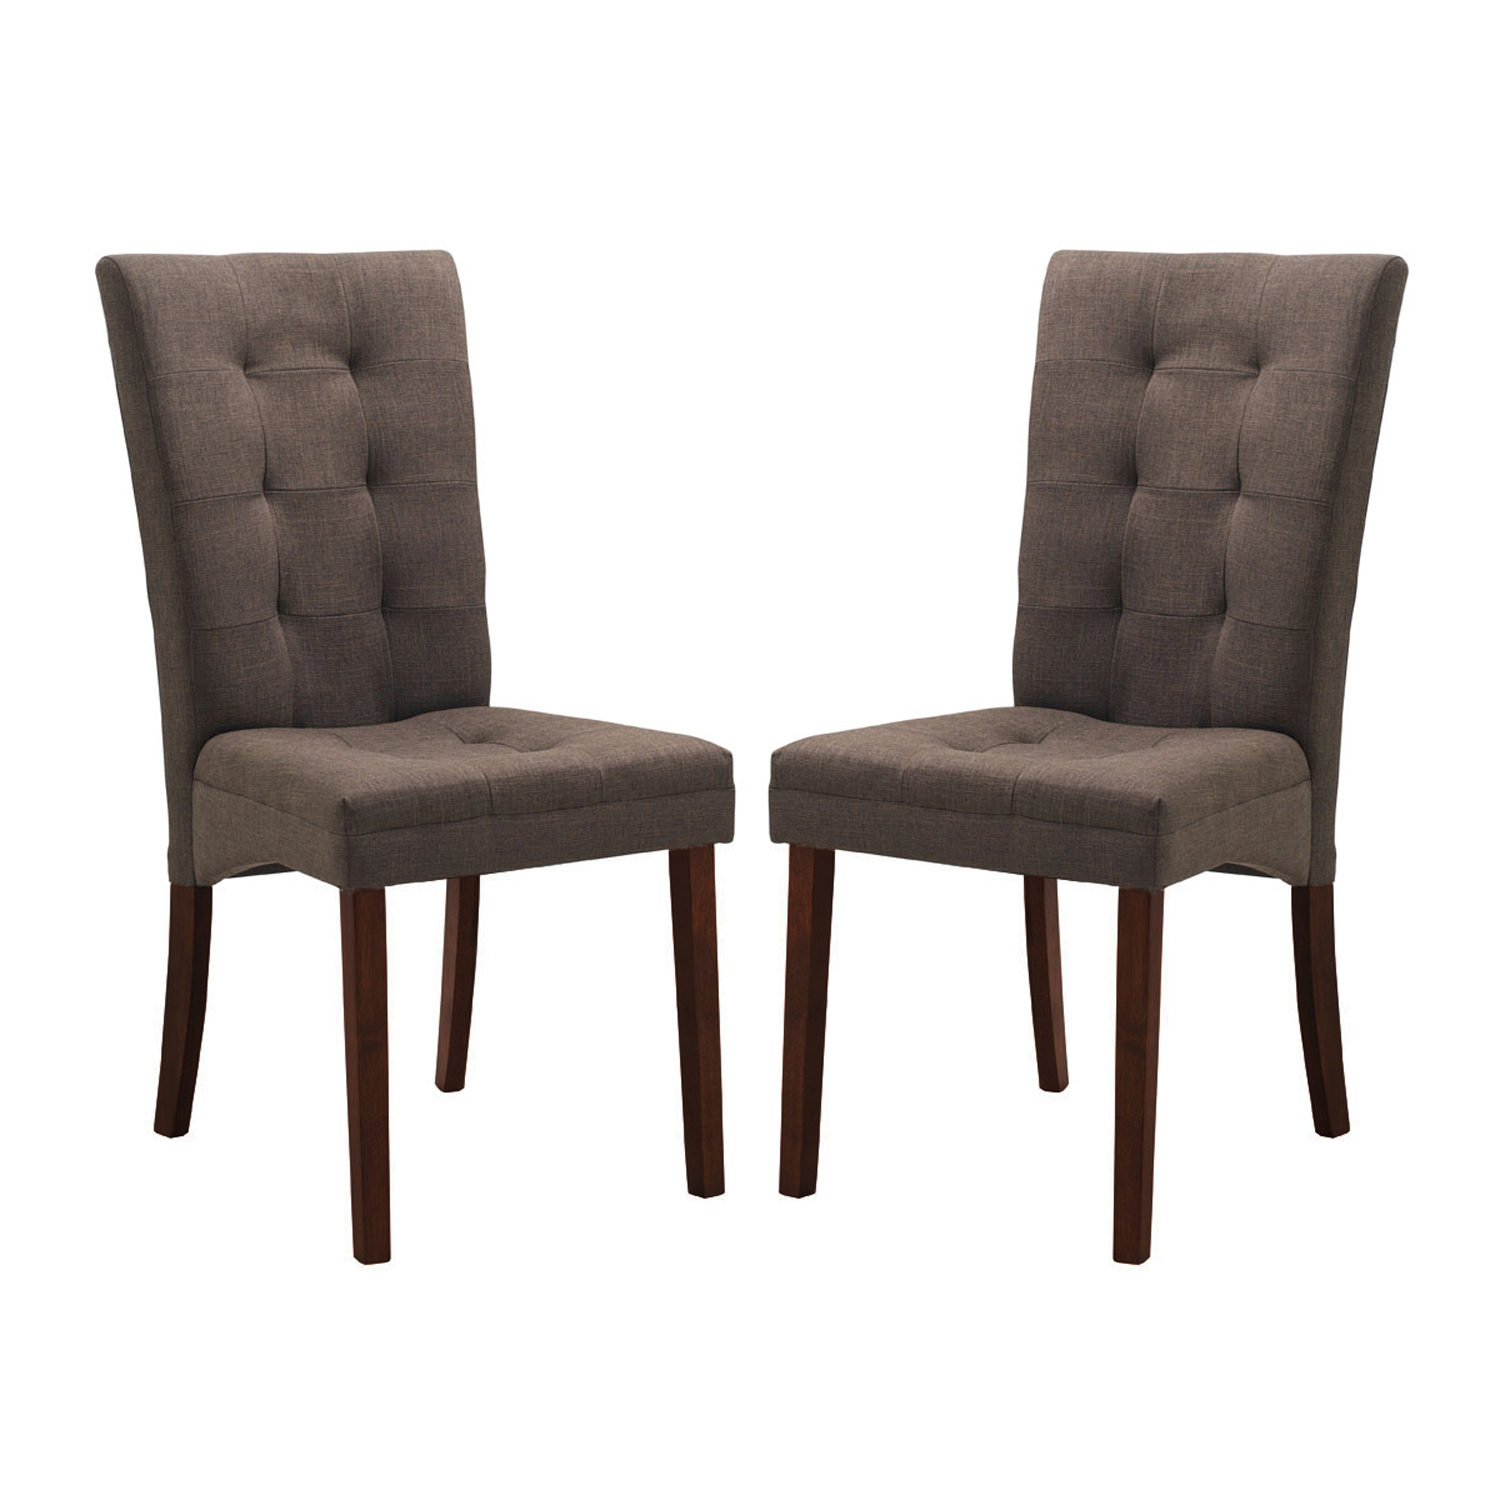 Dining Chair Fabric Anne Brown Fabric Dining Chairs Set Of 2 By Wholesale